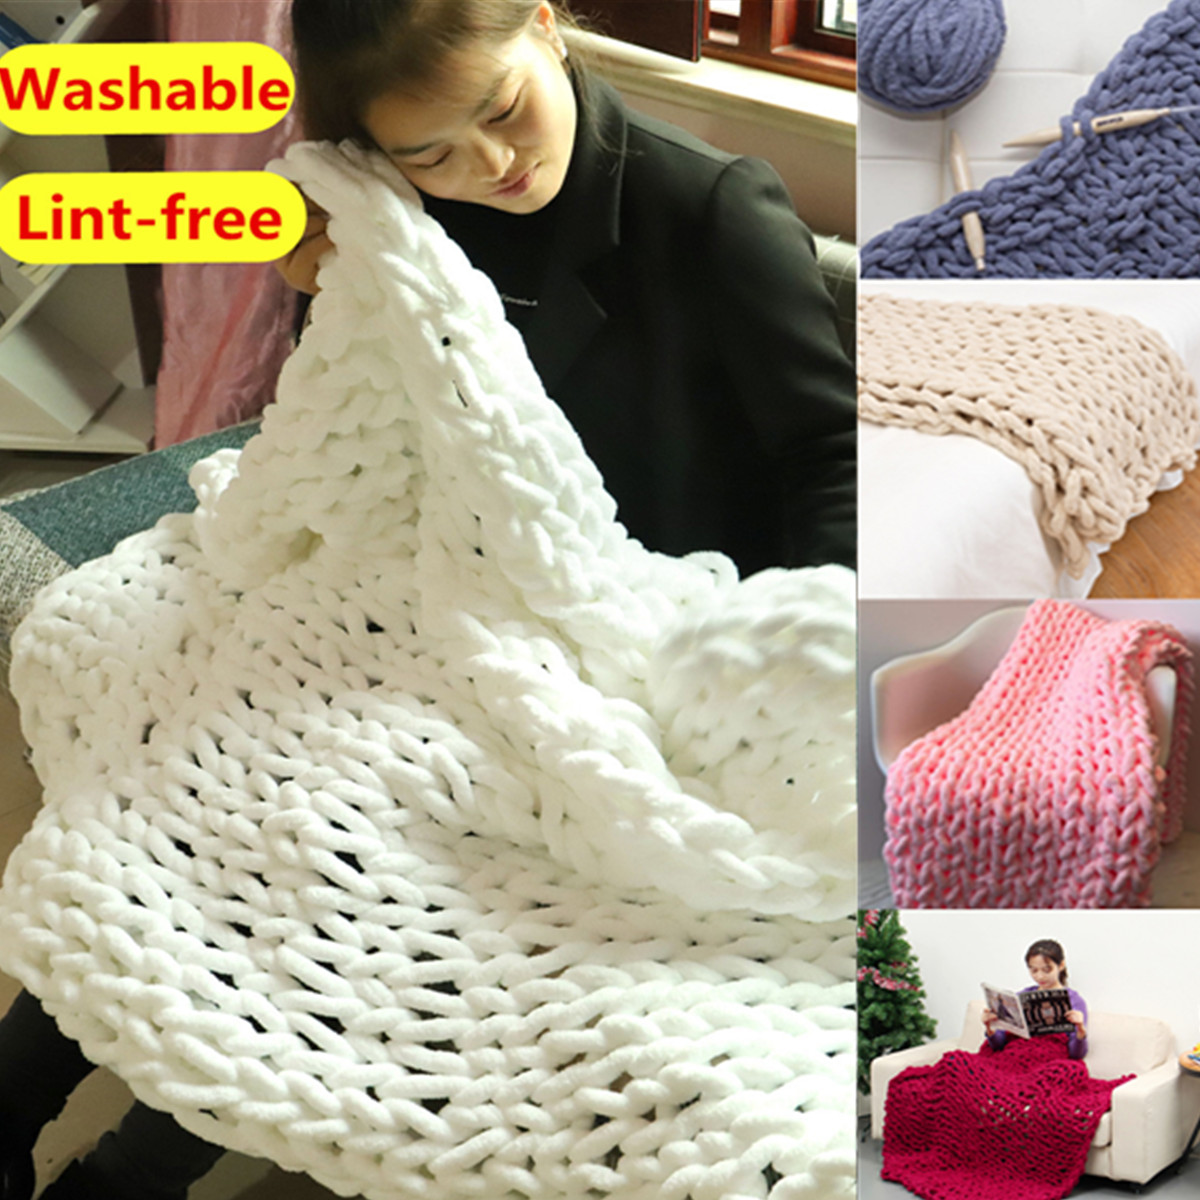 5 Sizes Washable Hand Chunky Knitted Bed Blanket Lint-free Thick Bulky Knitting Sofa Throw Rug Child Play Mat